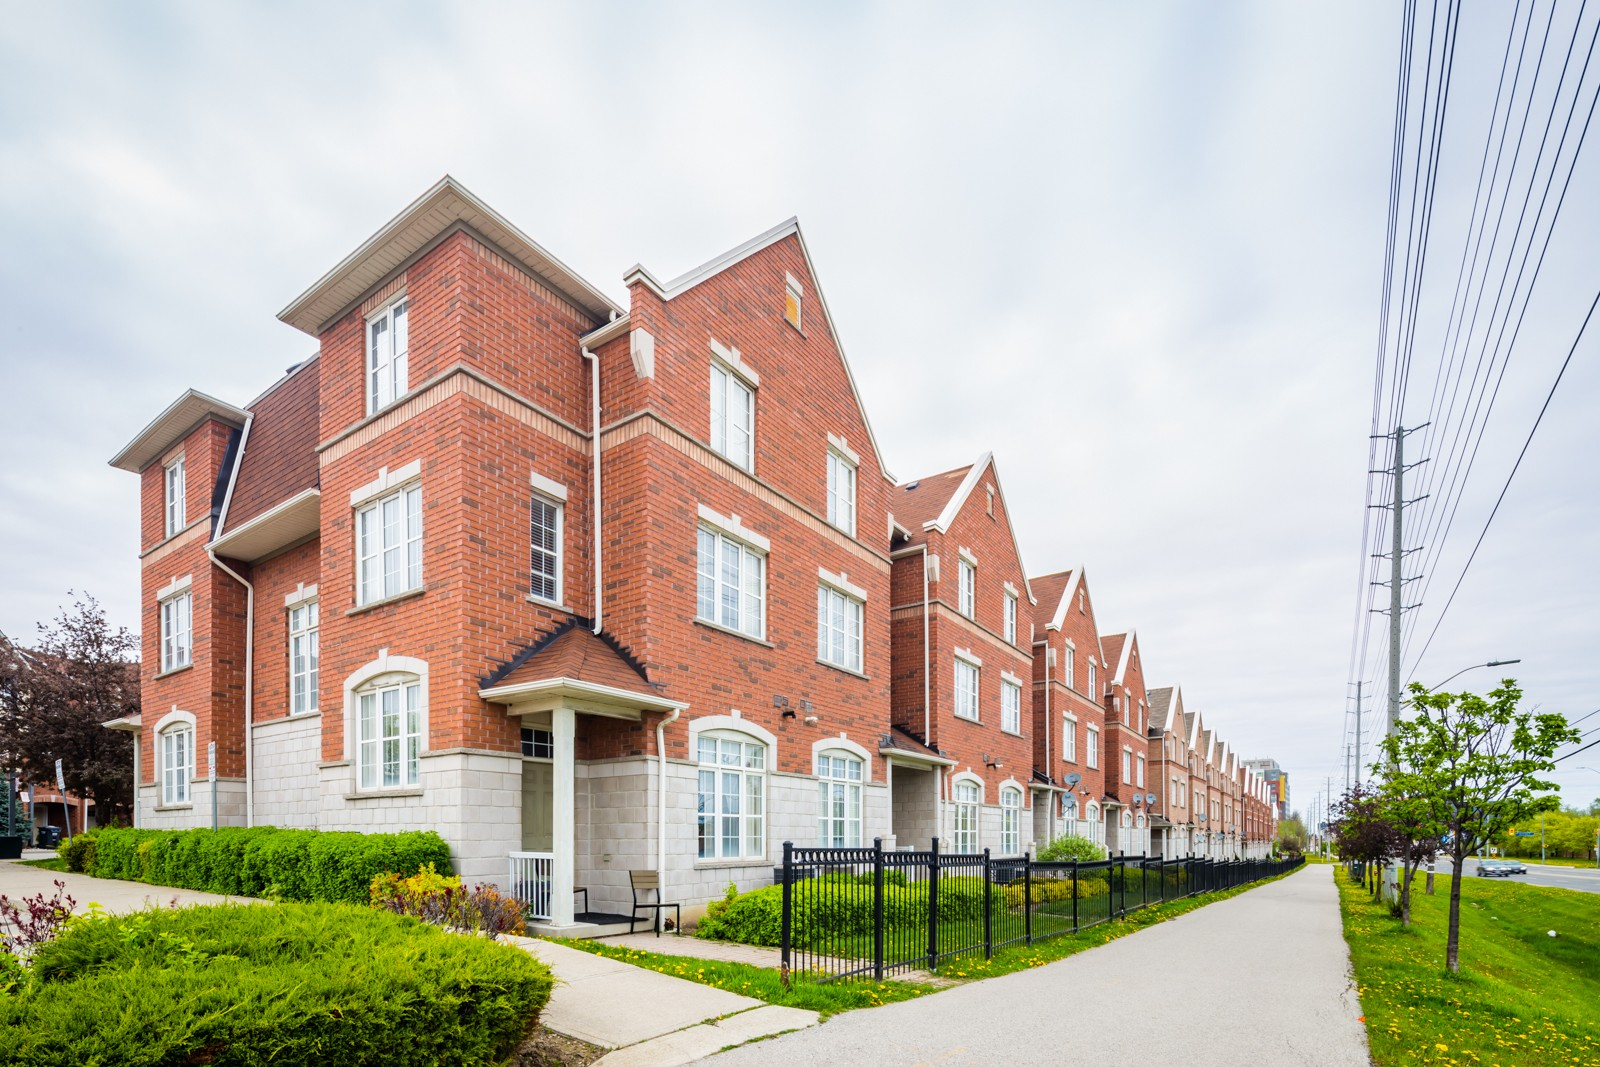 3030 Breakwater Court Townhouses at 3030 Breakwater Crt, Mississauga 0